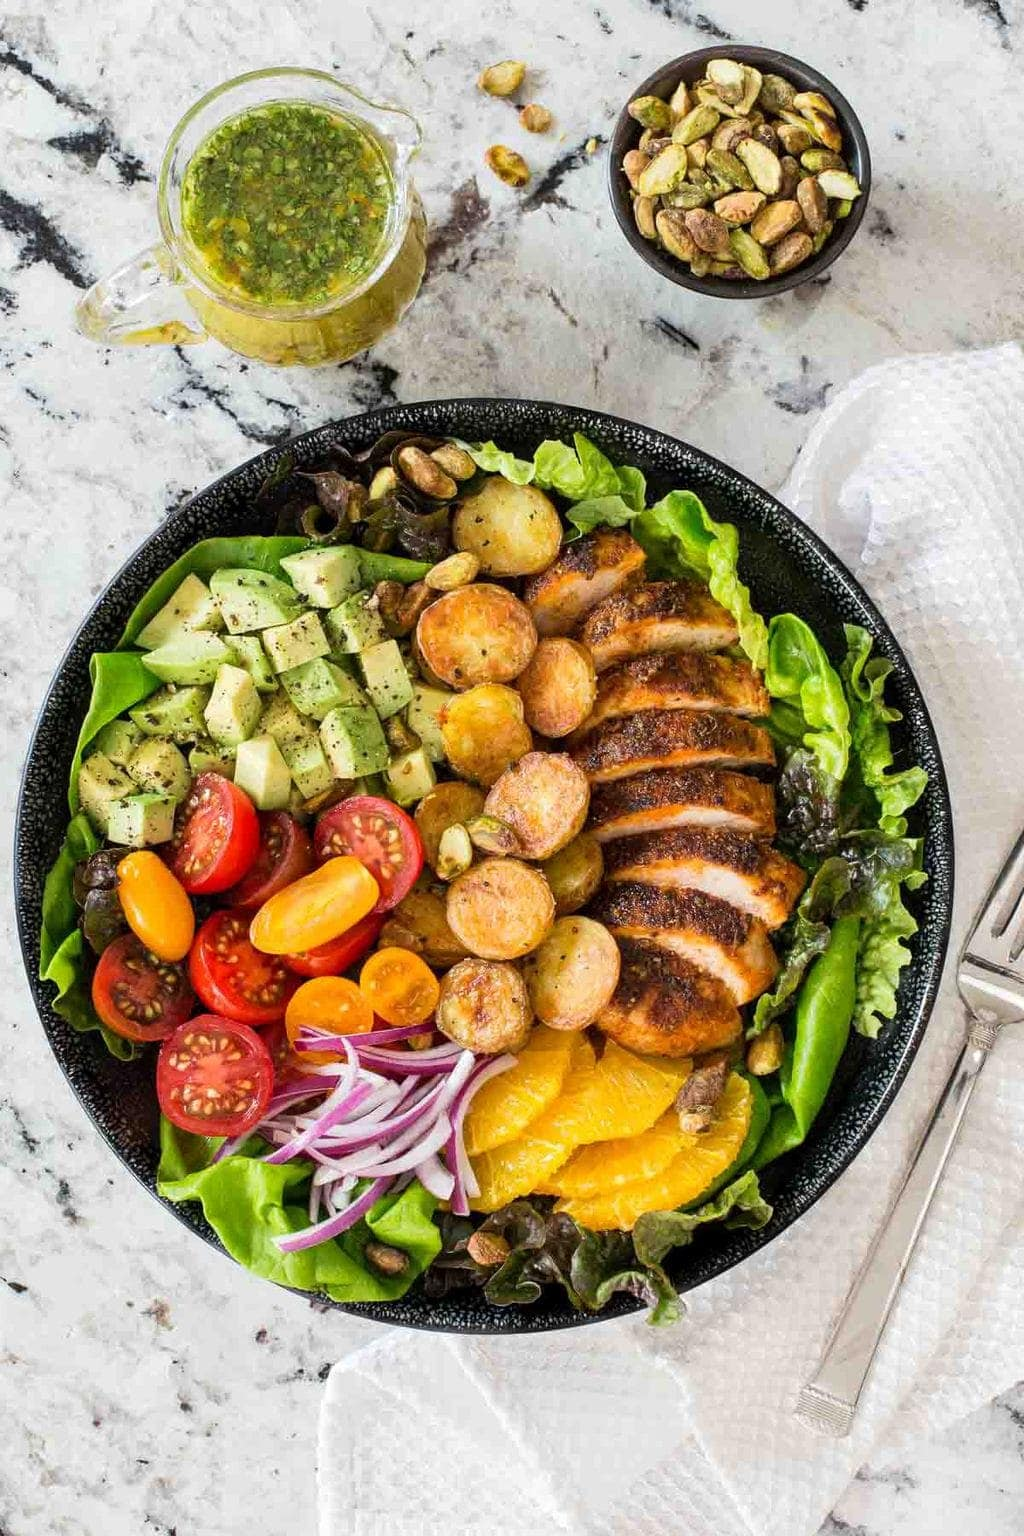 Vertical image of a salad with juicy tender chicken breasts in a black bowl on a granite surface.